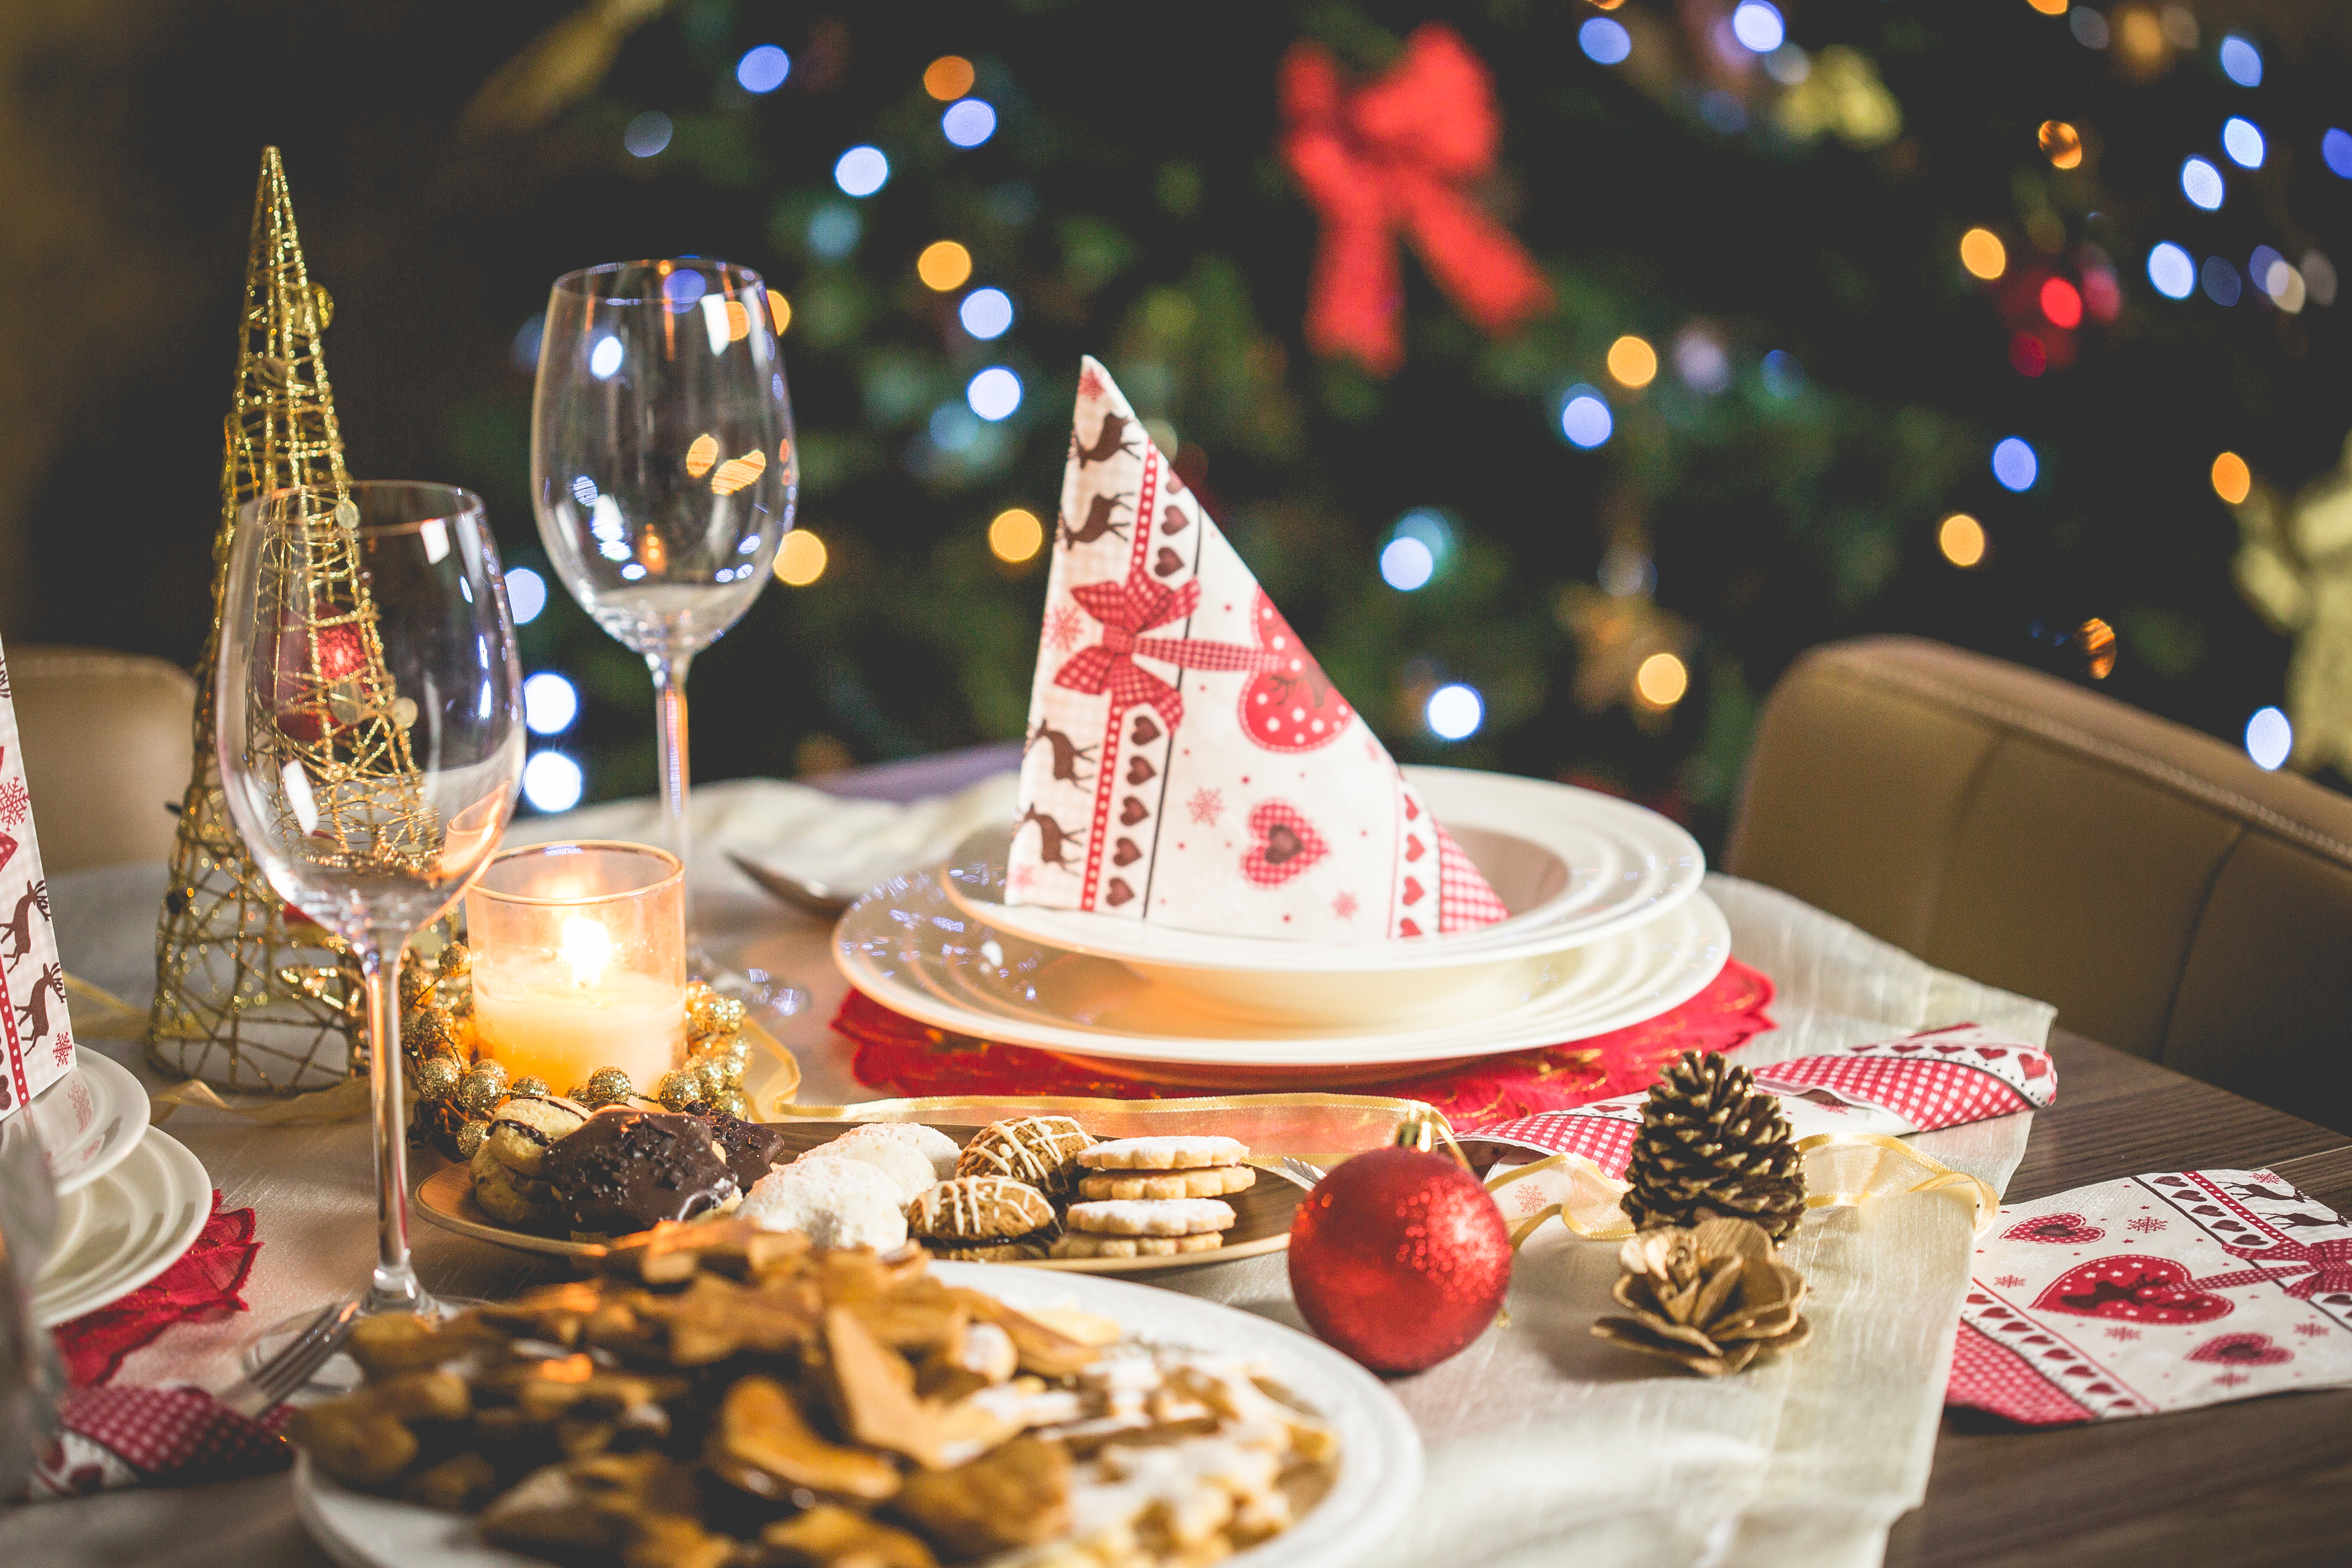 Table set with cookies and various Christmas decor along with Christmas tree in background